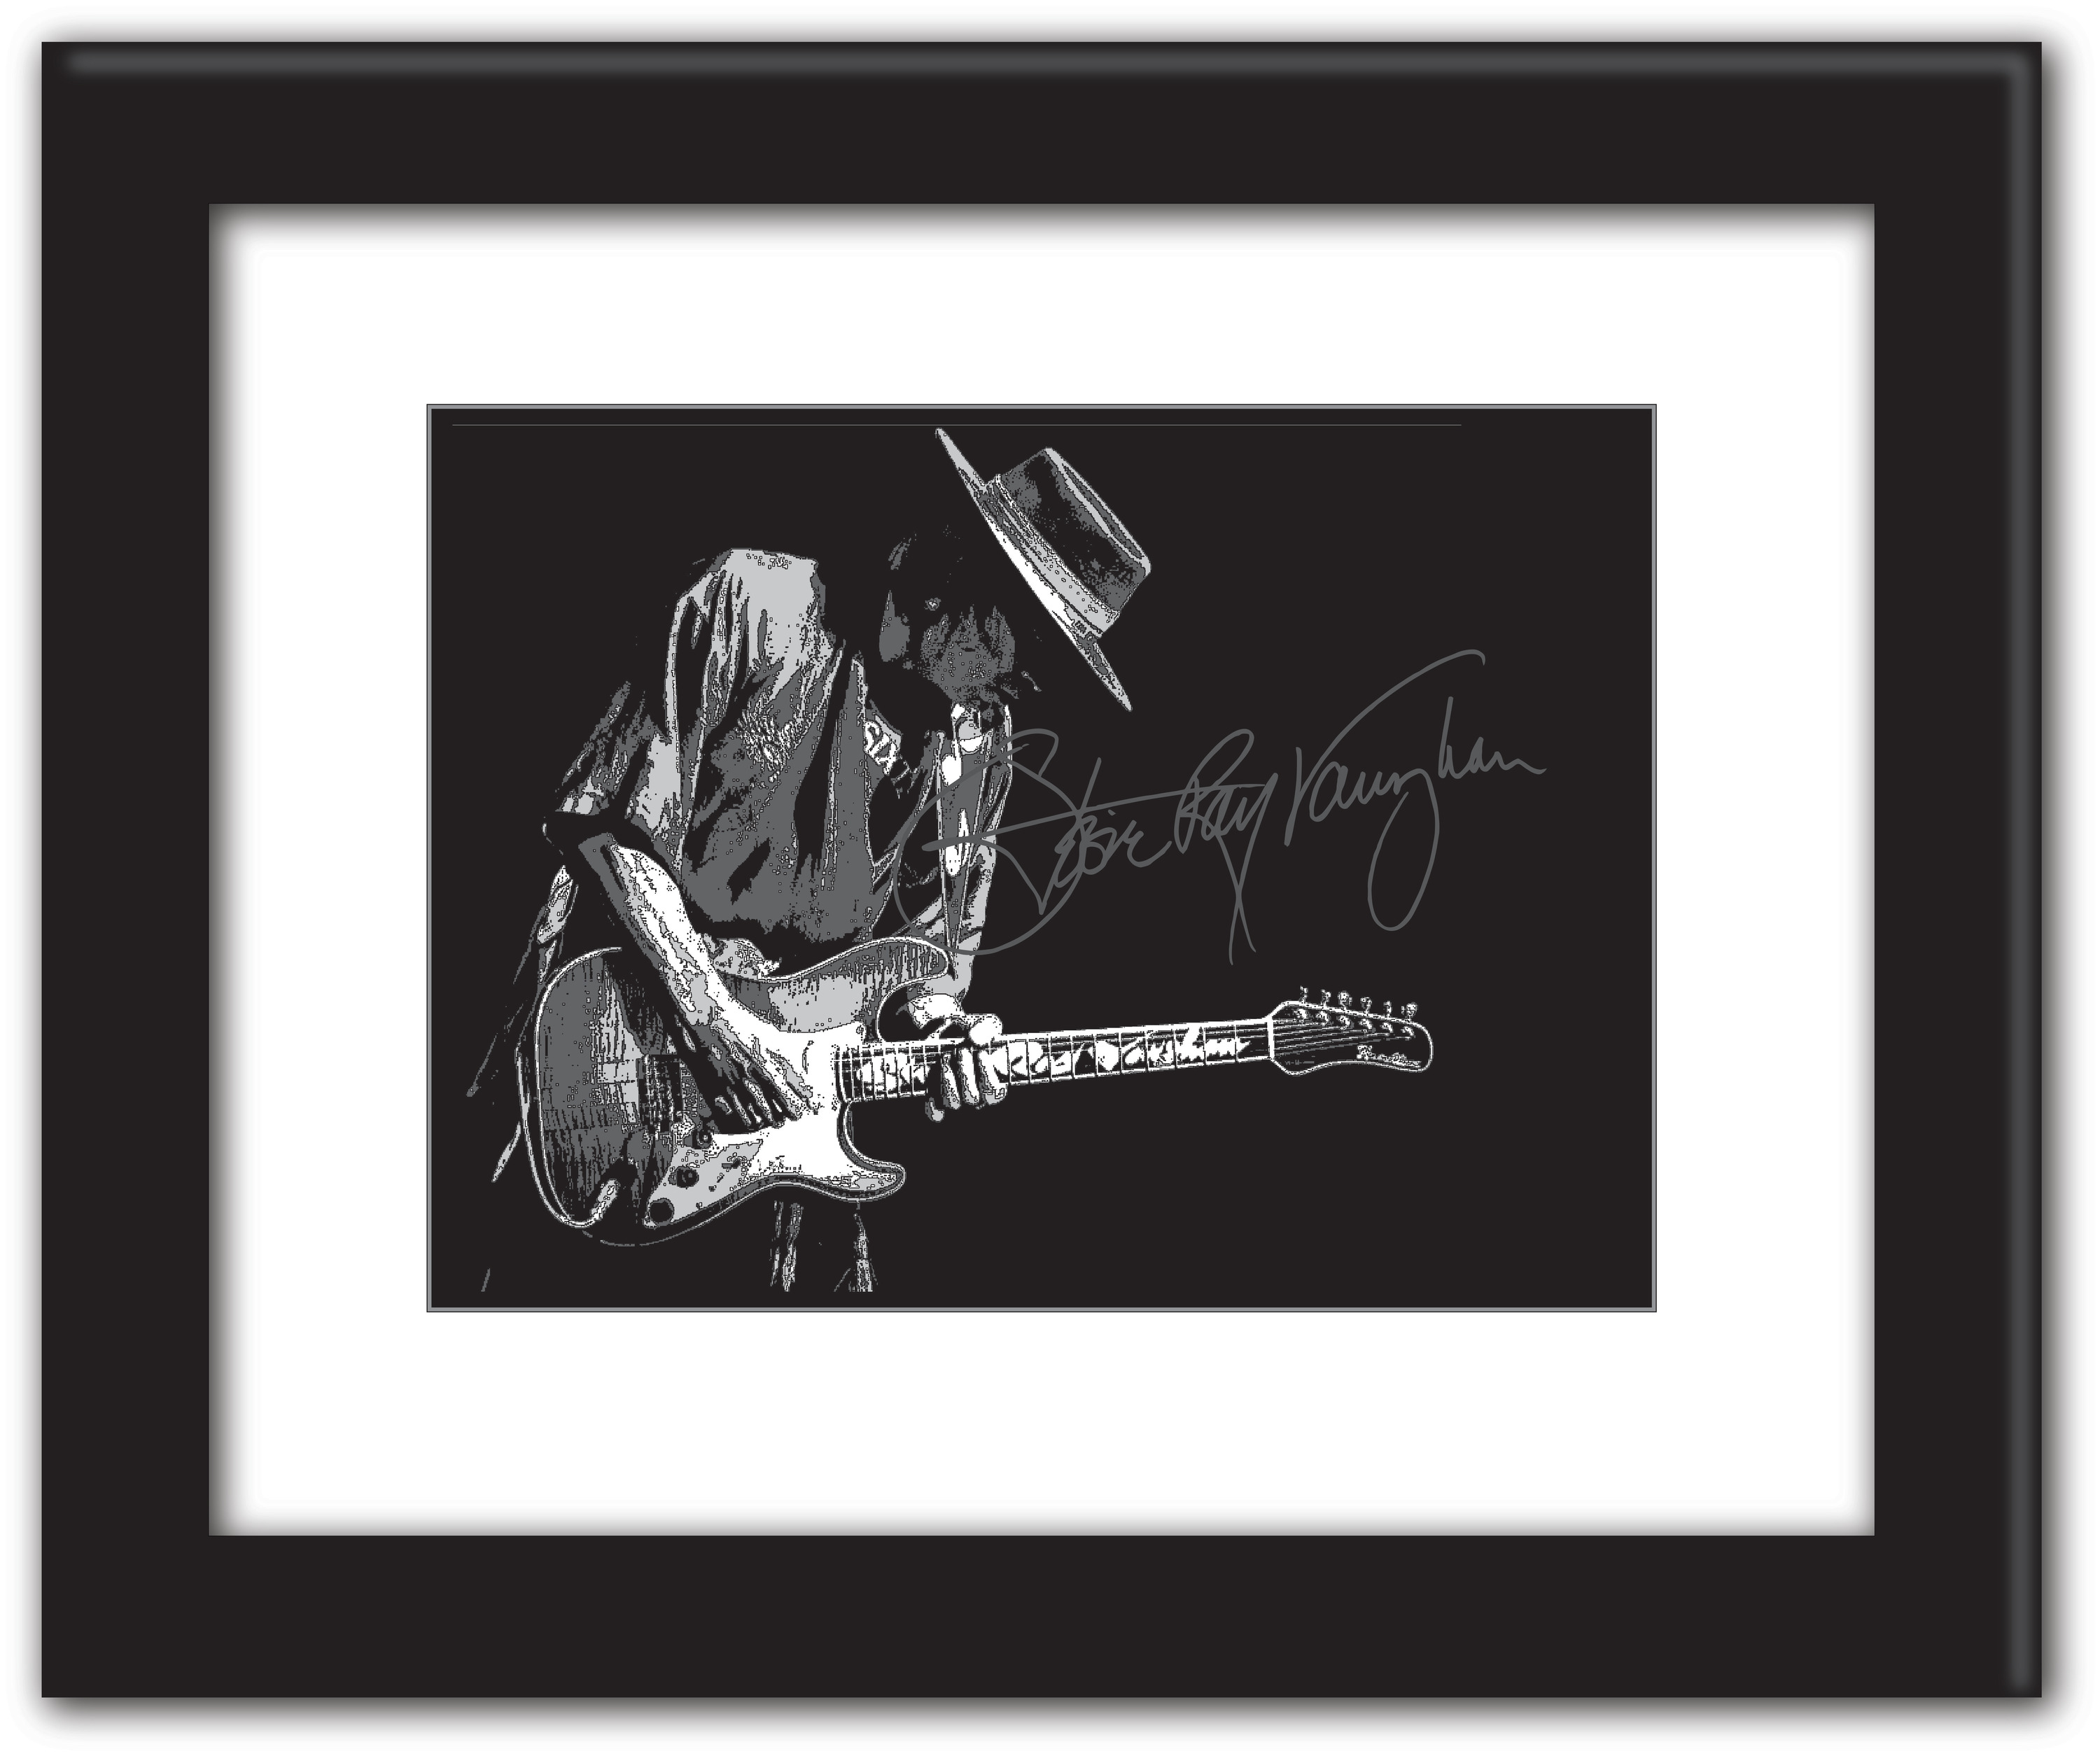 Stevie ray vaughn posterized 16x20 gaogc1